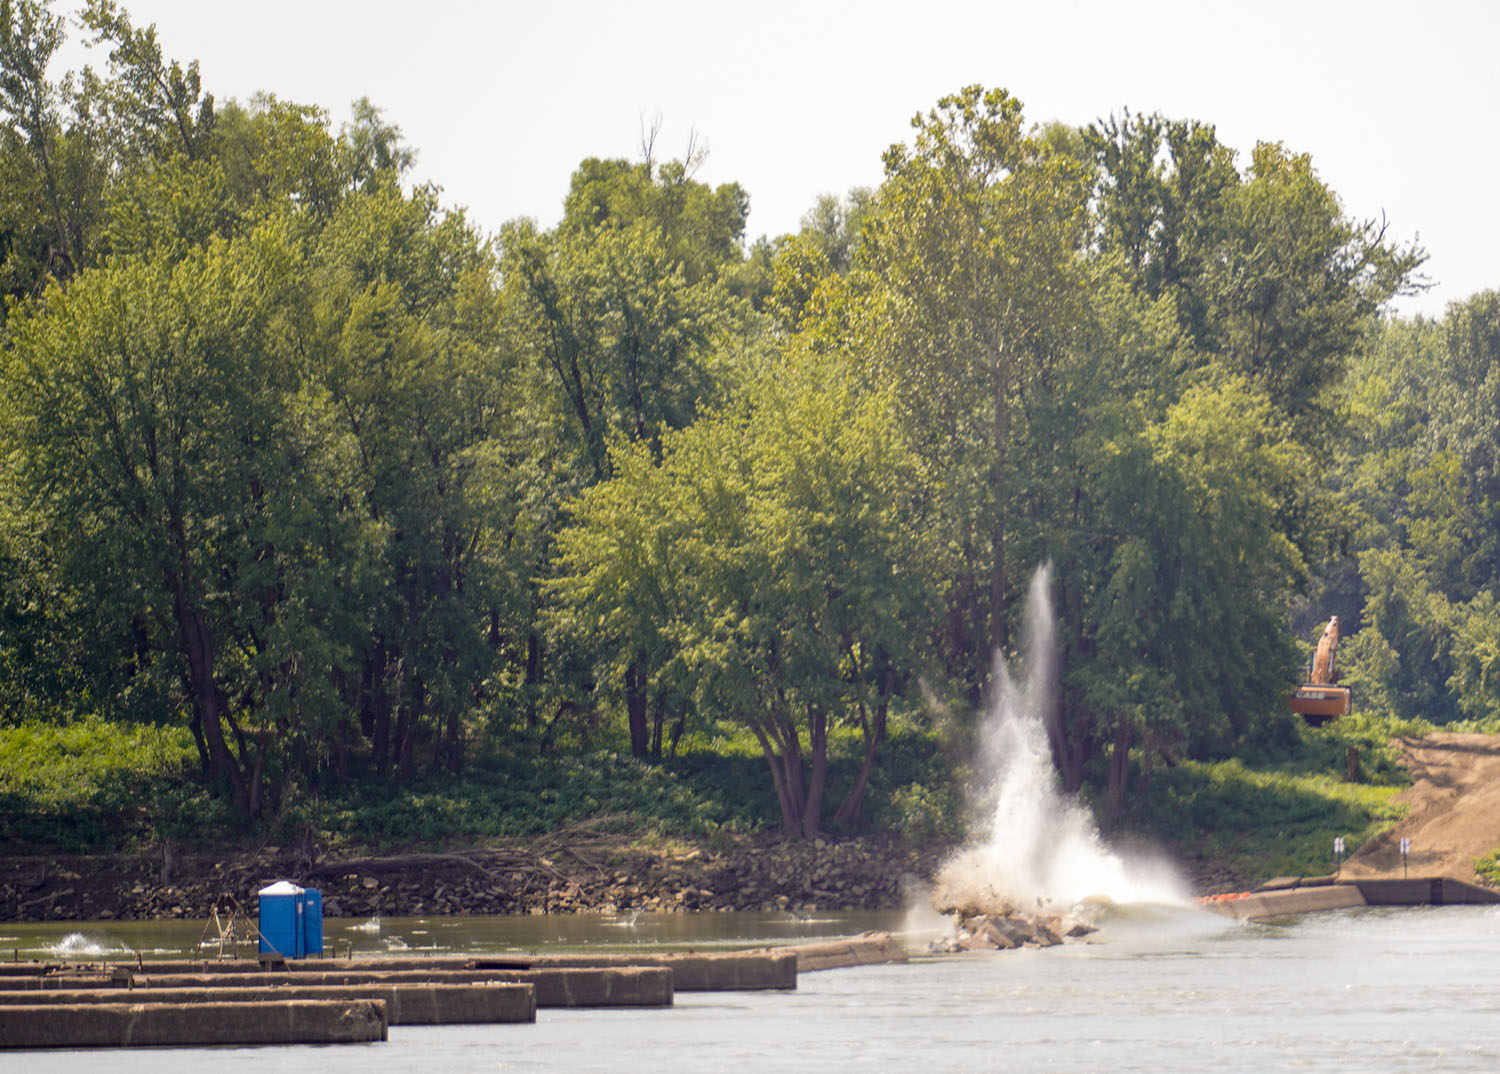 The fixed weir demolition at Locks and Dam 52 took place August 21, 2019. Locks and Dam 52 and 53 were replaced by Olmsted Locks and Dam.